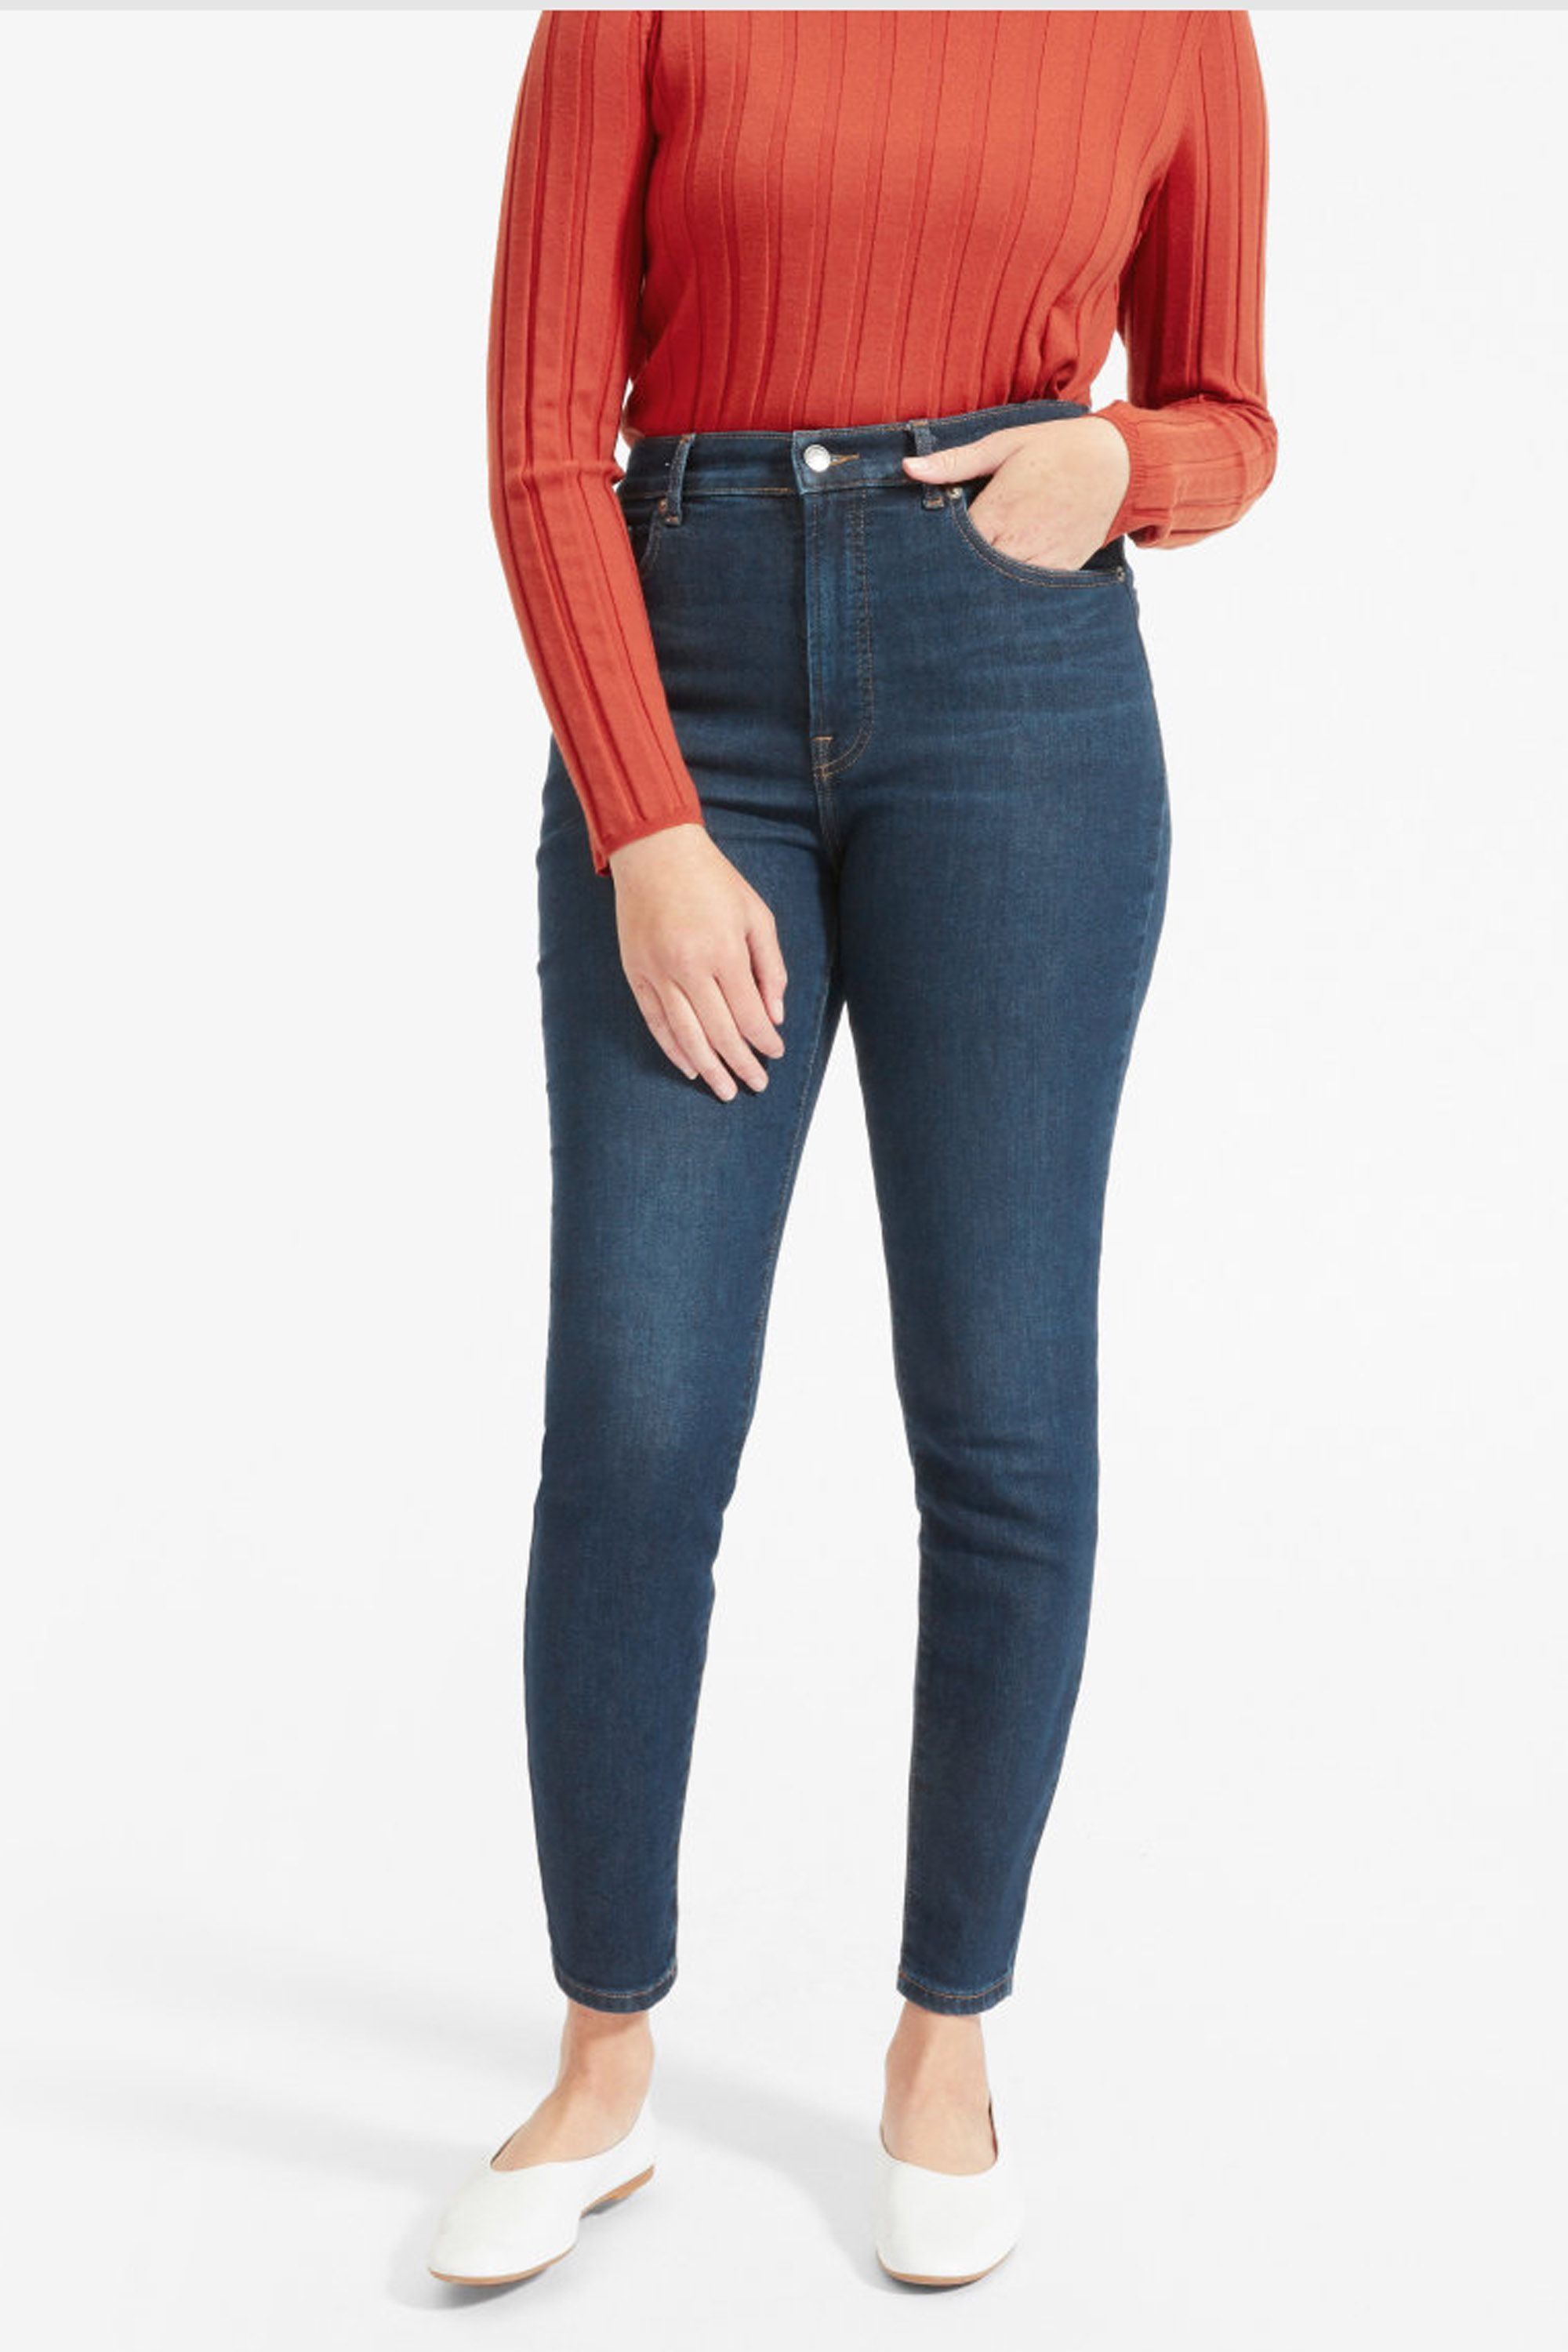 f679f806e2 Authentic Stretch High-Rise Skinny | COSMO Style | High waist jeans ...